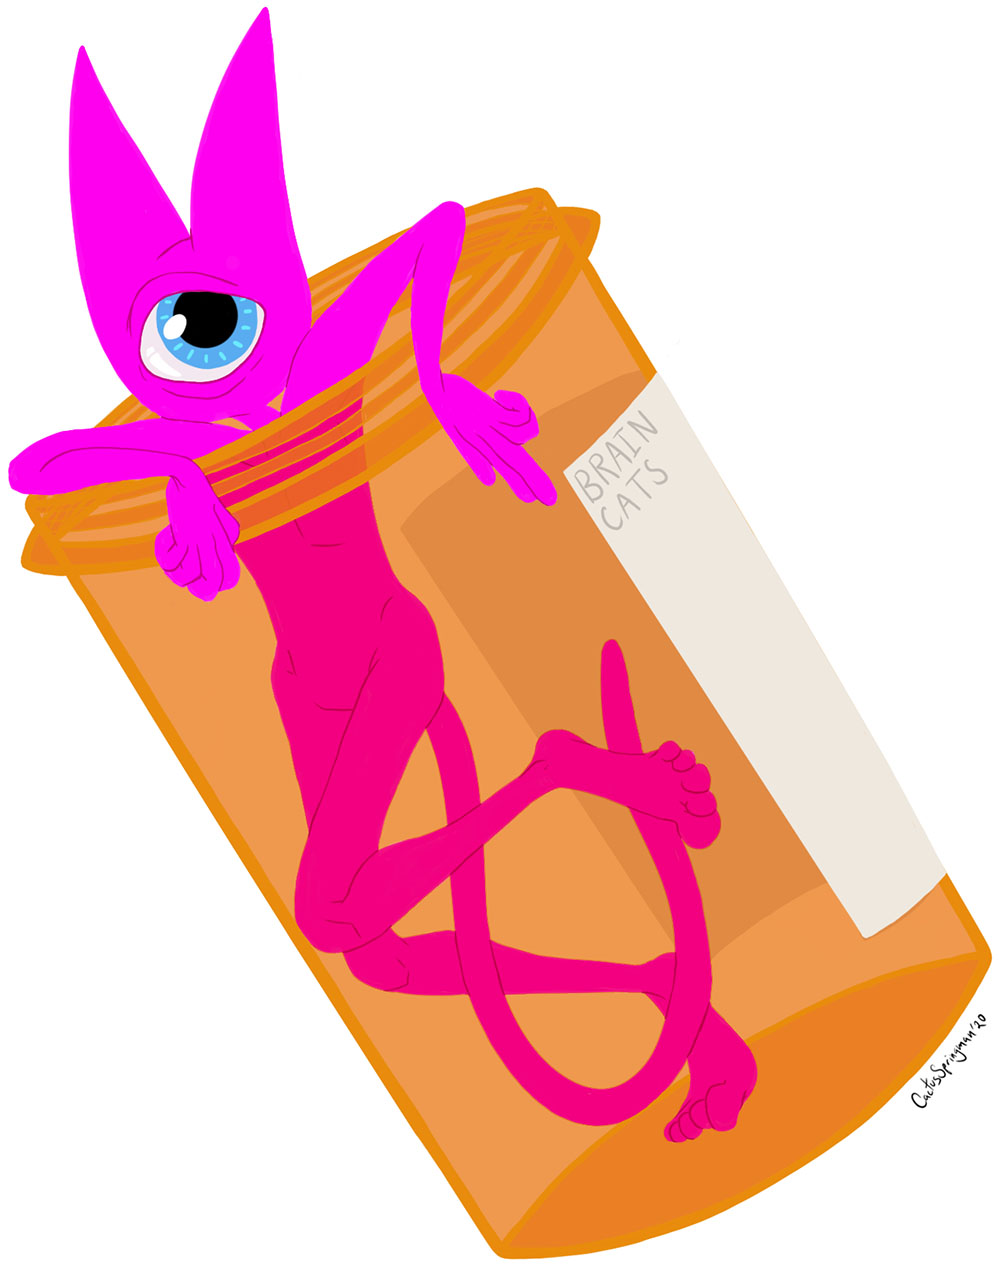 Title, Take Your Meds, by Cactus Springman. A digital illustration depicting a lithe pink cat with human features standing inside an orange medication bottle. The bottle lid is off, so the cat has their head and arms sticking out, resting on the rim. The pink cat has a blue cyclops eye.